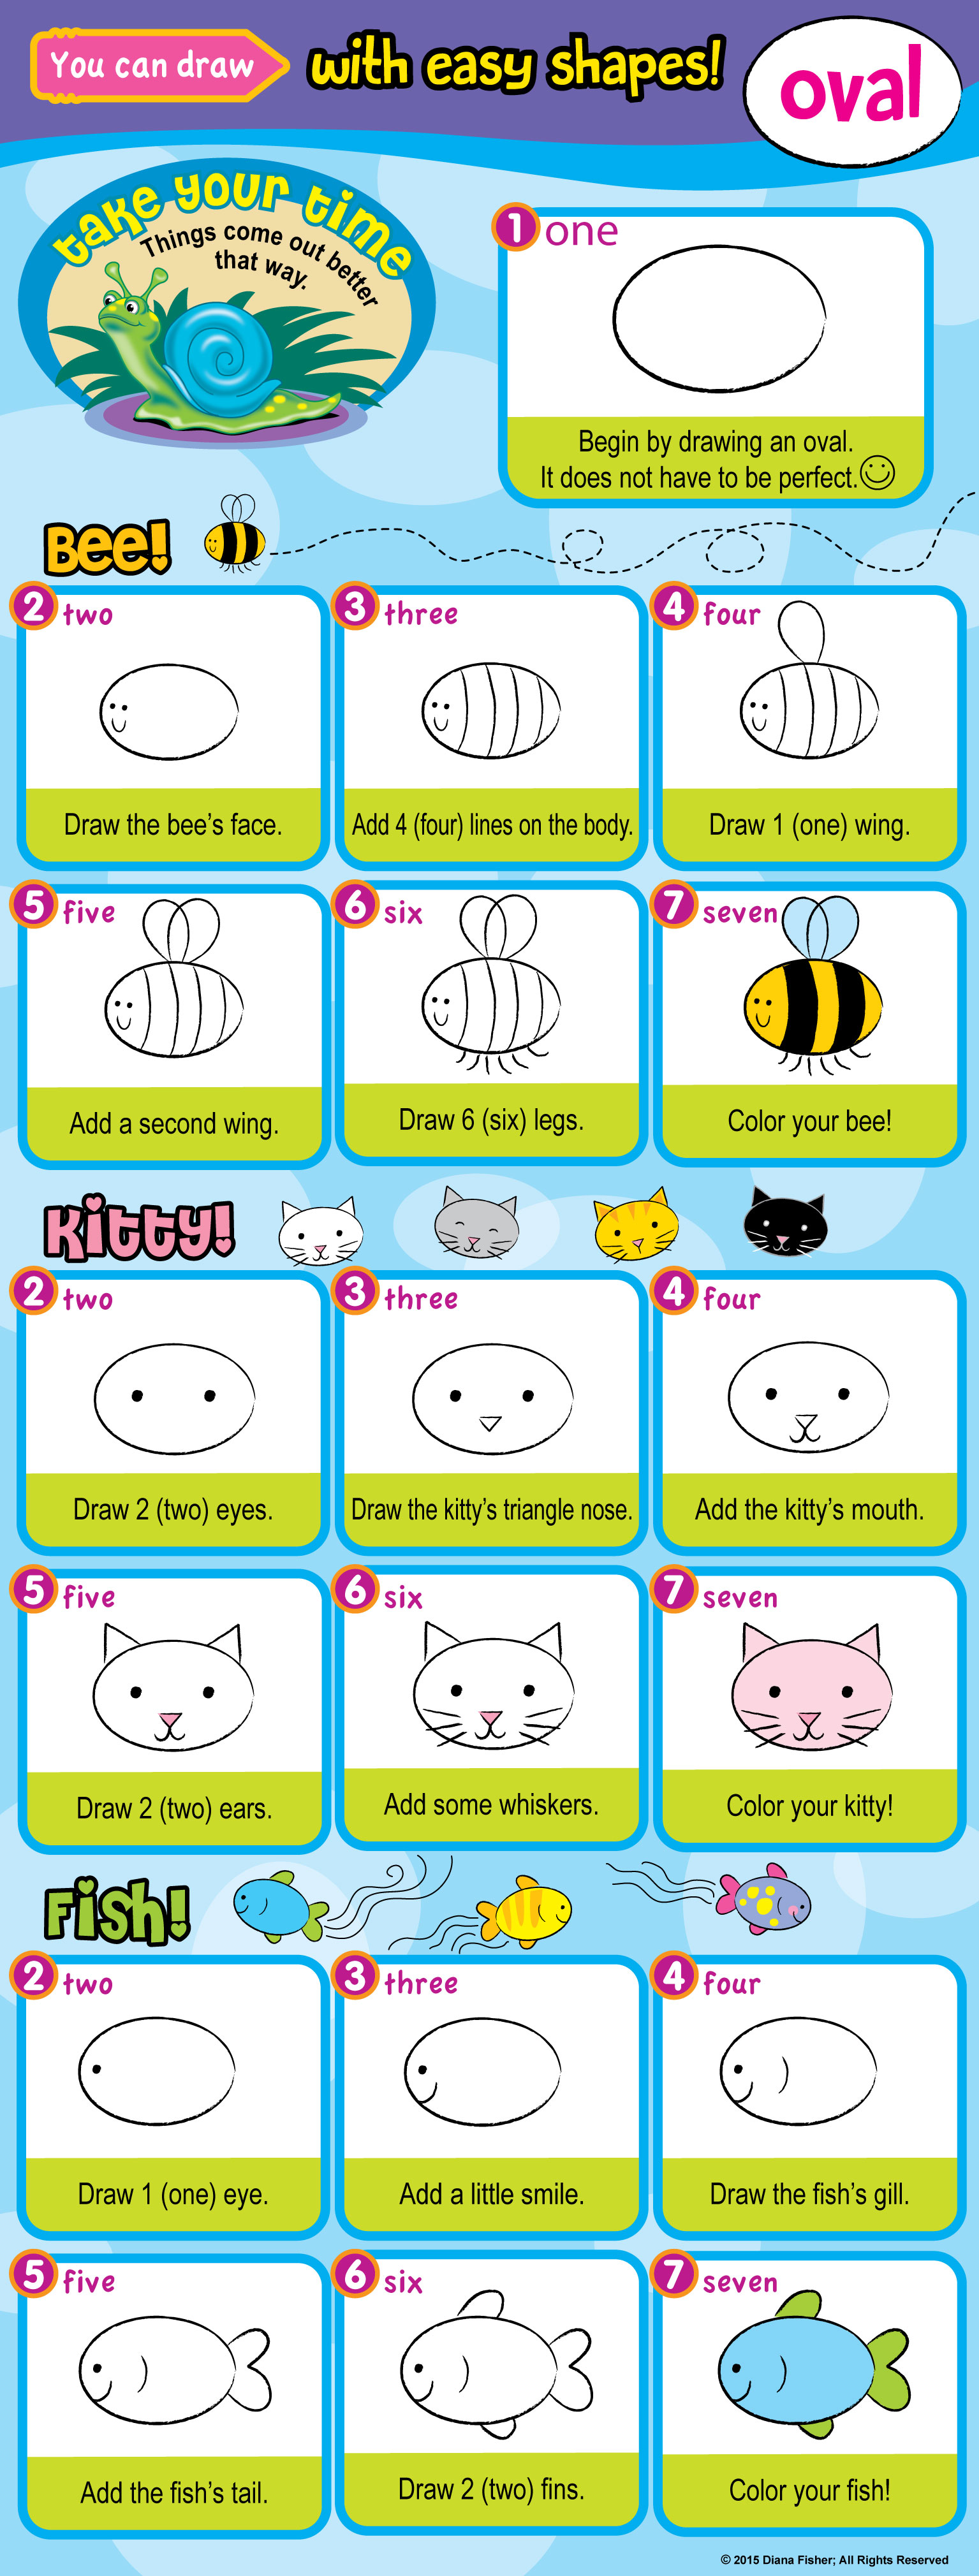 steps to draw a kitty, fish, and bee with an oval for children